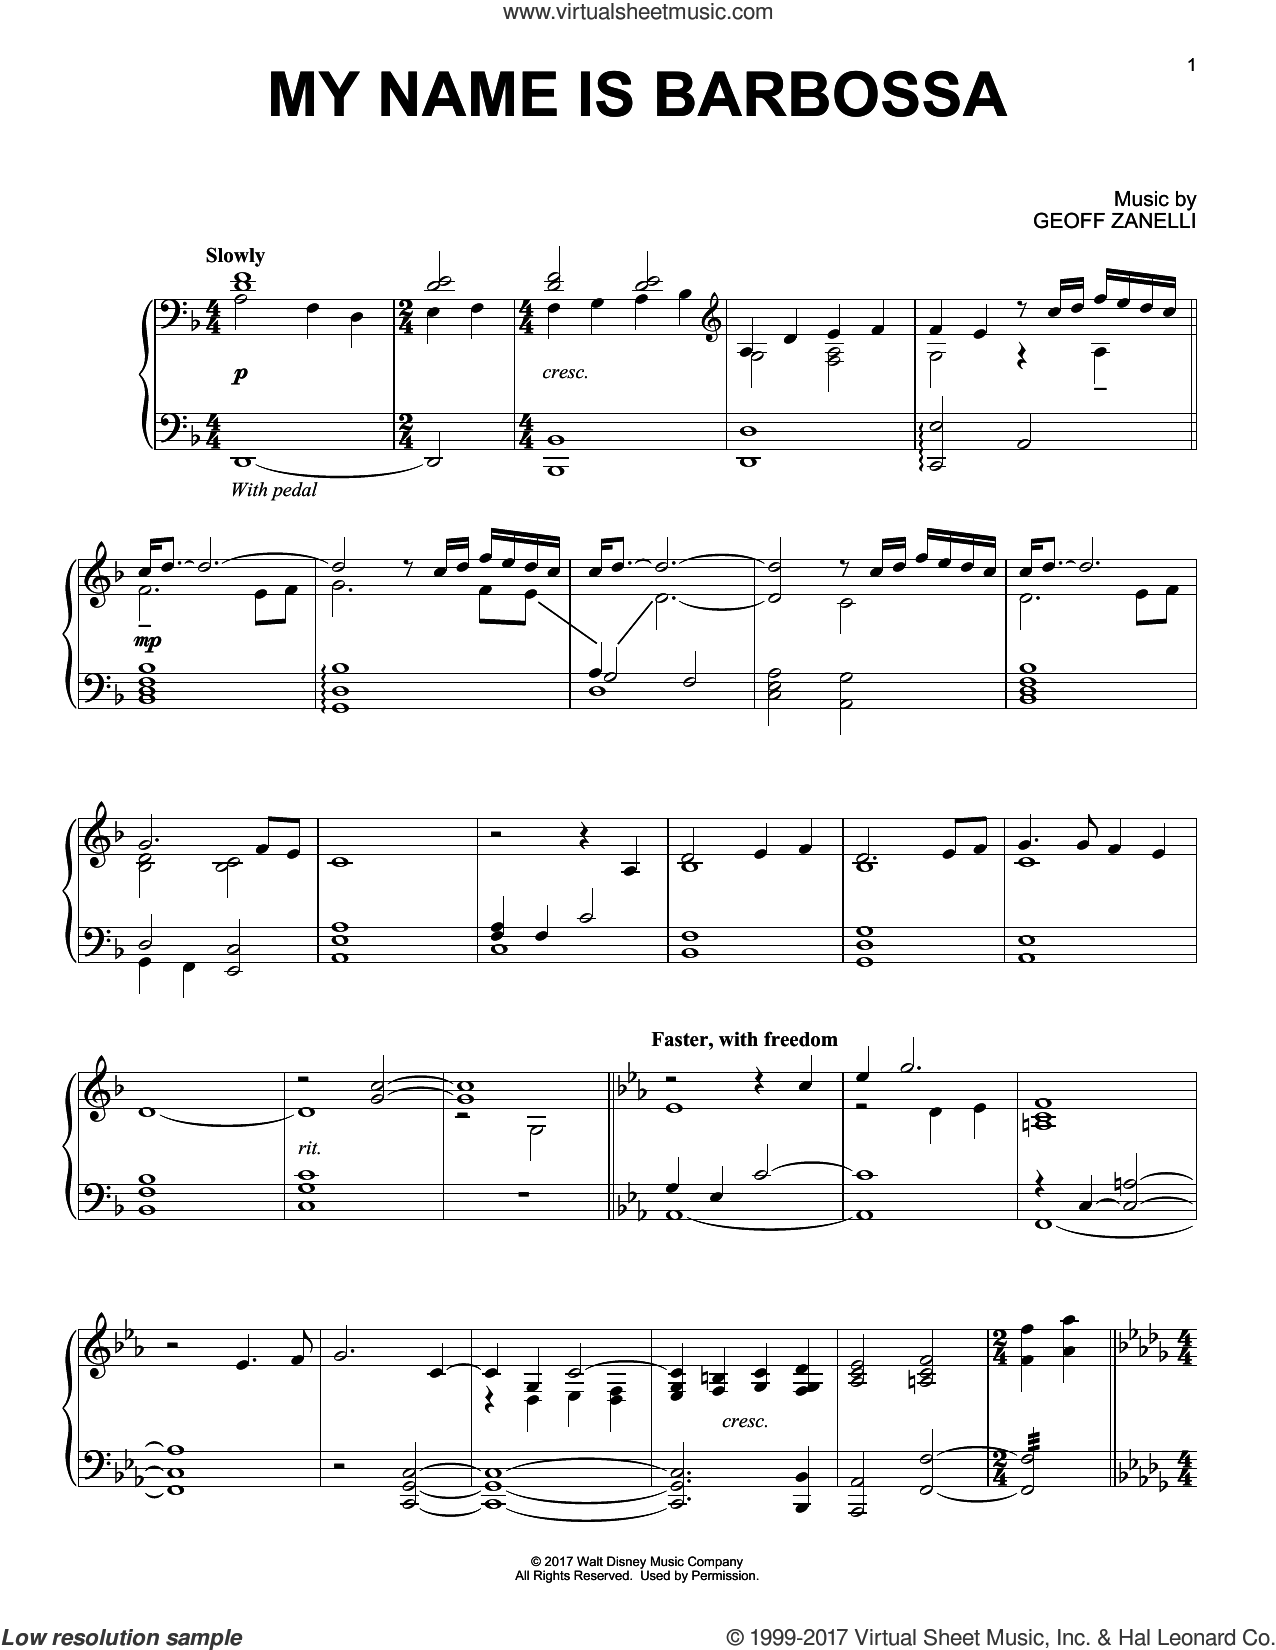 My Name Is Barbossa sheet music for piano solo by Geoff Zanelli, intermediate skill level